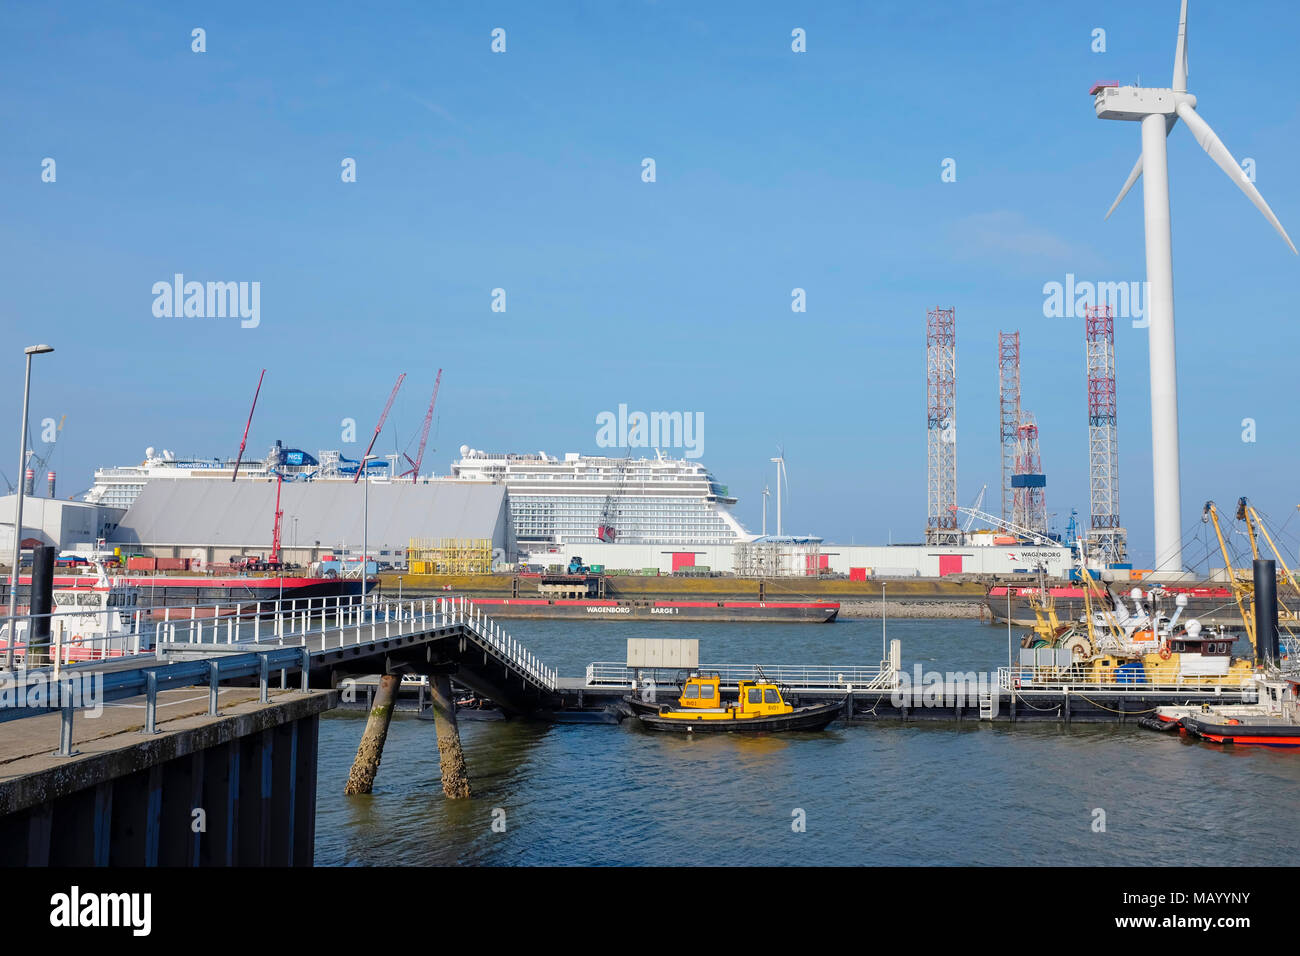 Norwegian Bliss Cruise Ship receiving final constructional works in Port at Eemshaven, The Netherlands. - Stock Image